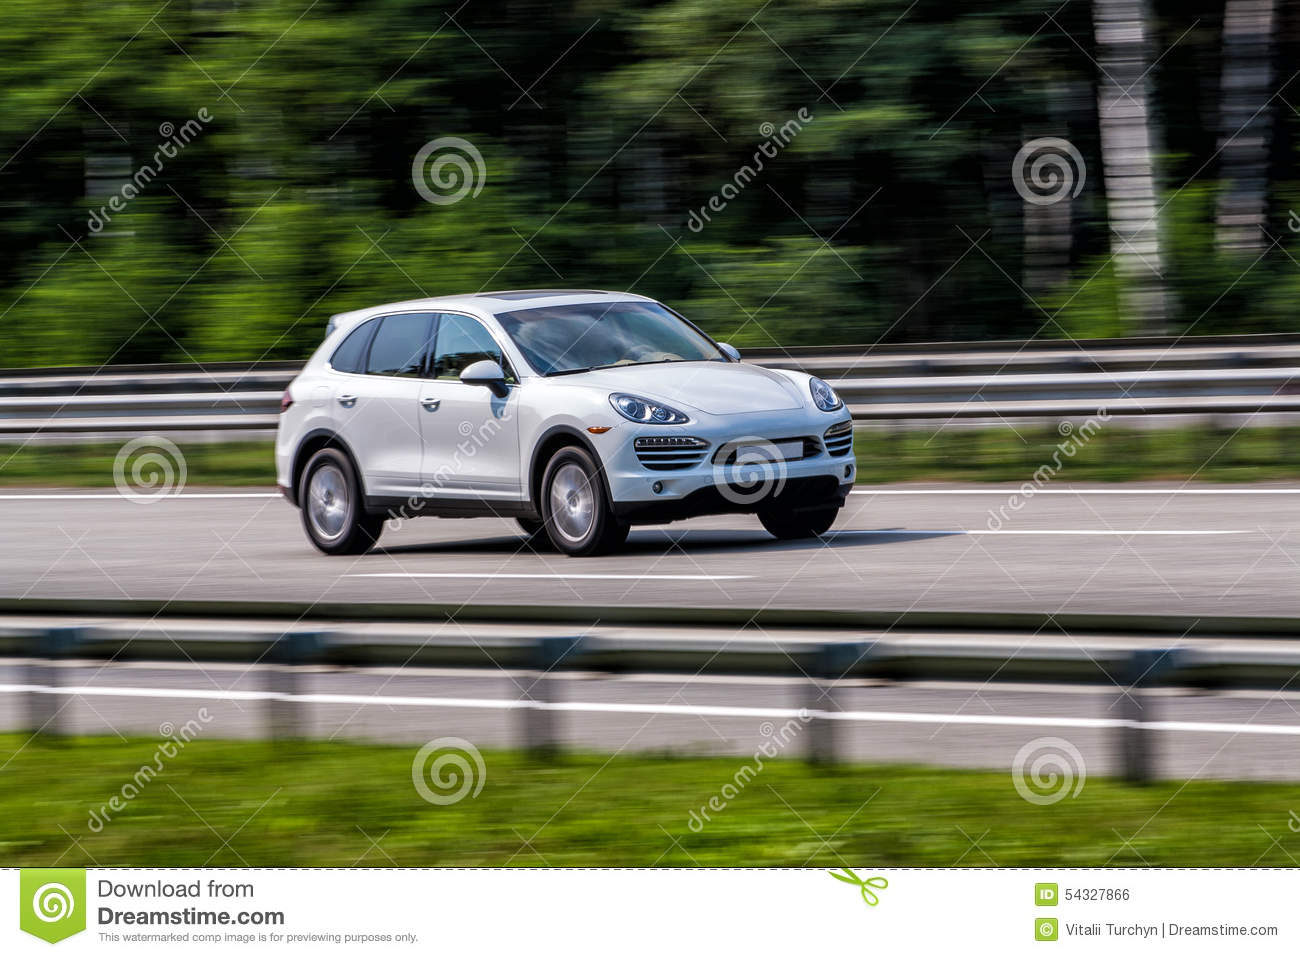 Luxury white Porsche Cayenne speeding on empty highway